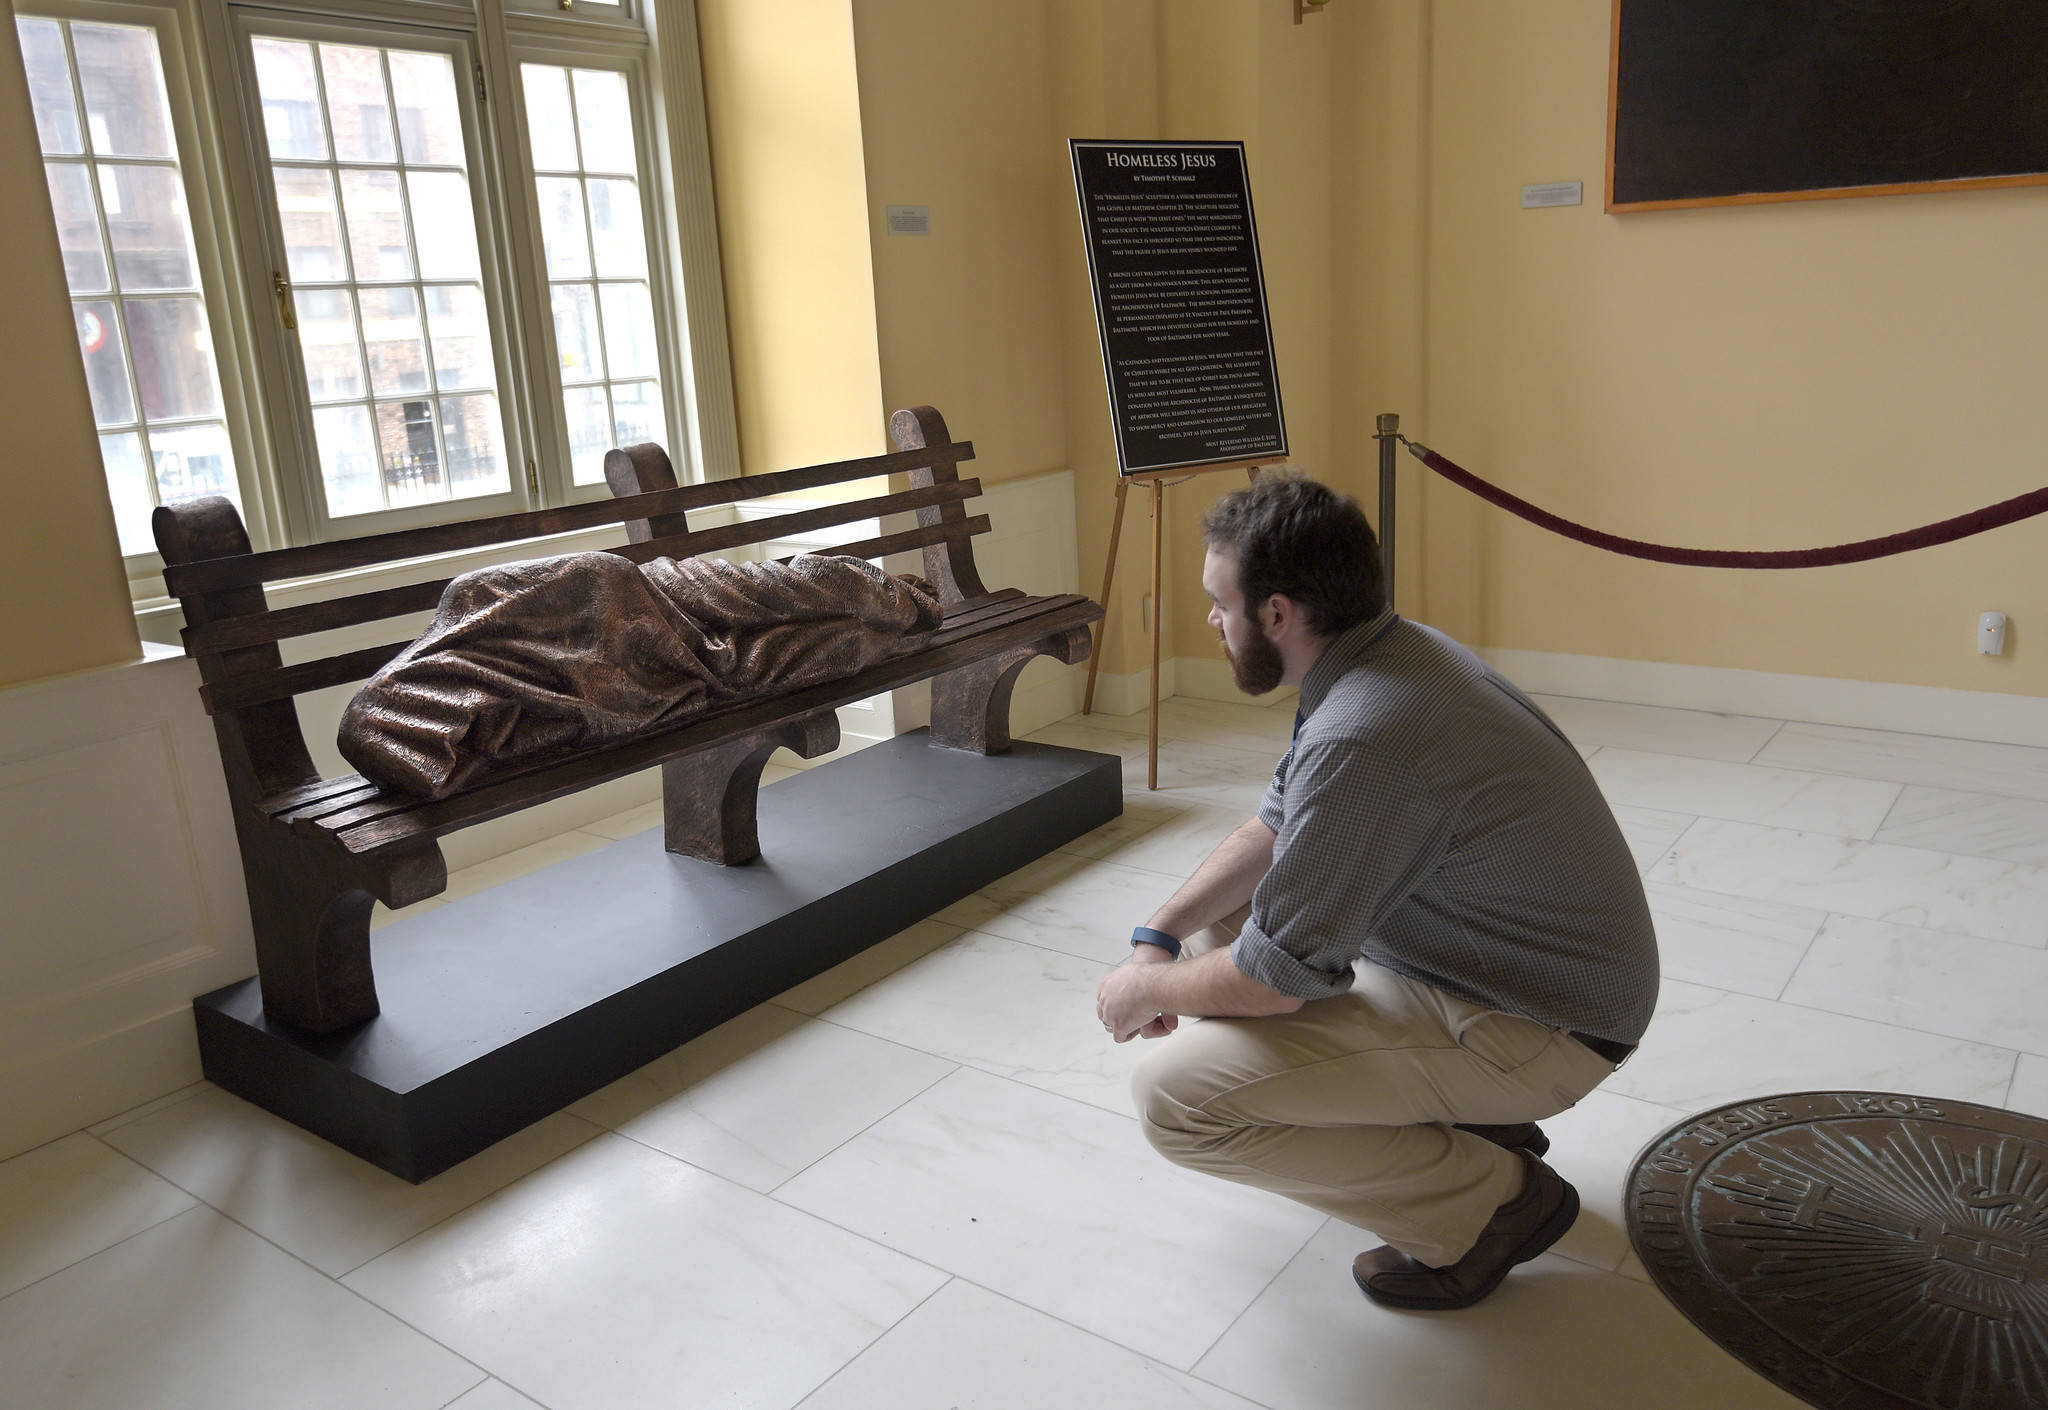 Homeless Jesus Finds Its Place In Baltimore Capital